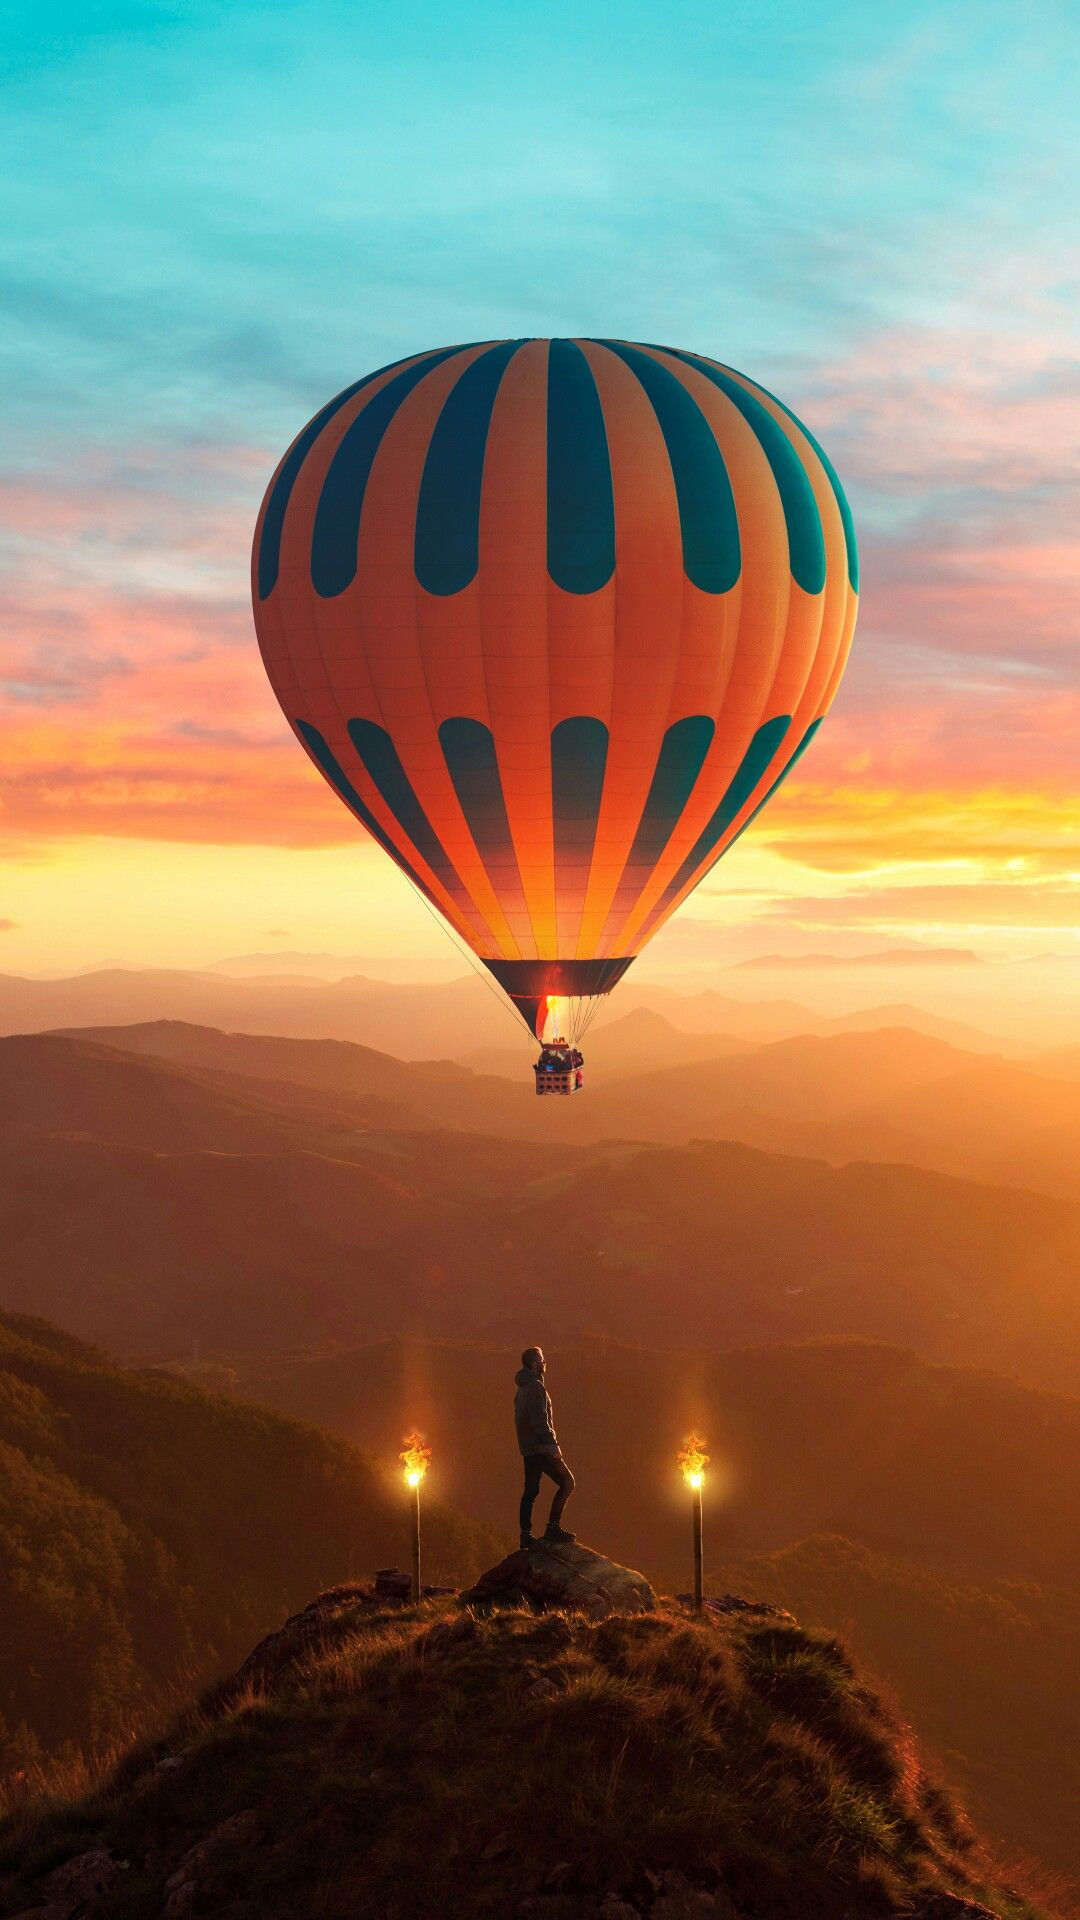 A Good Wallpaper Drugs For Wallpapers Lovers Montgolfières Cerf